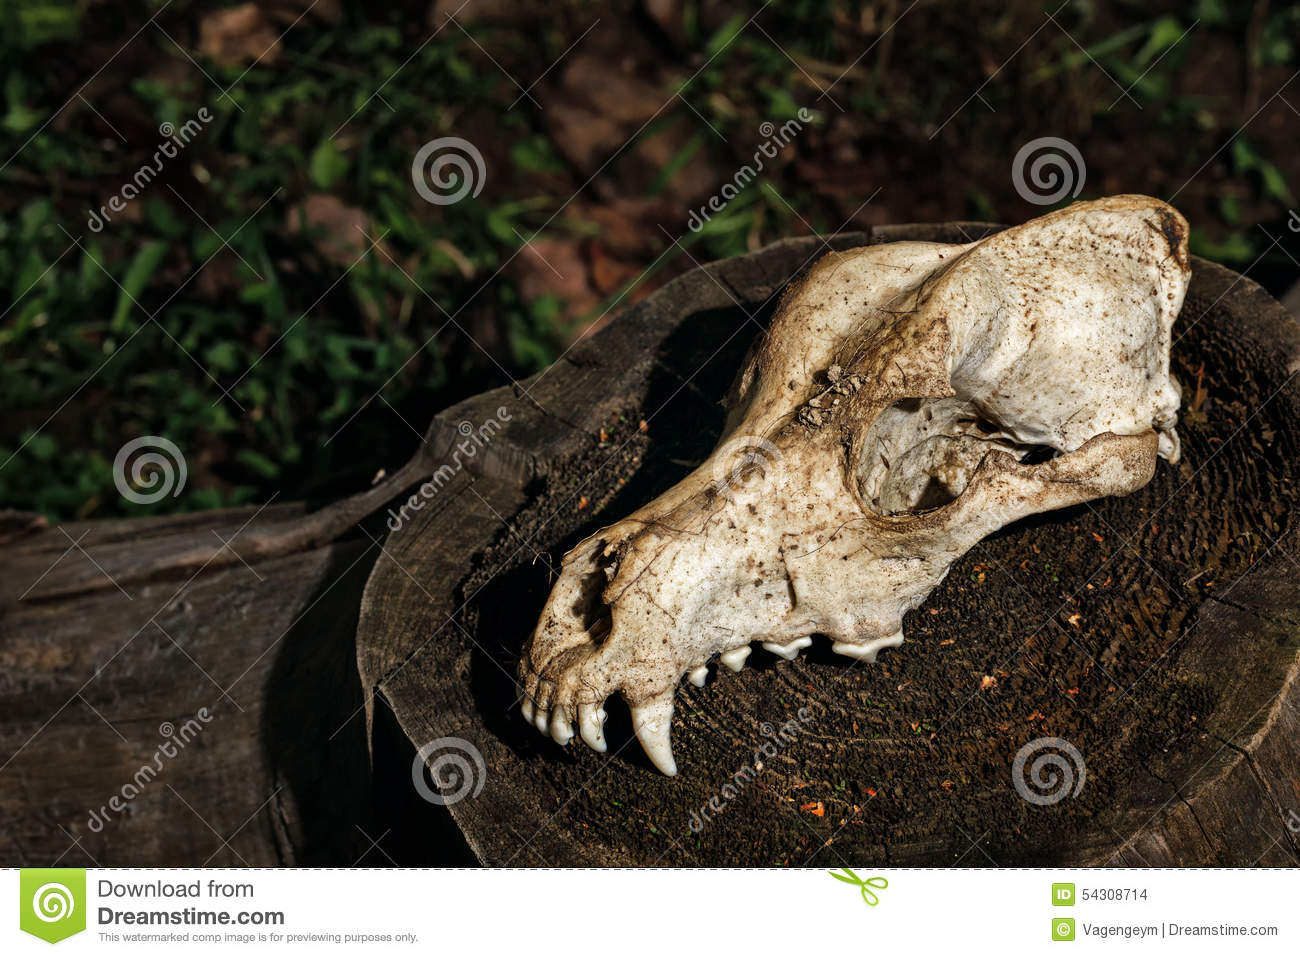 Canine skull closeup stock photo. Image of deceased, horror - 54308714